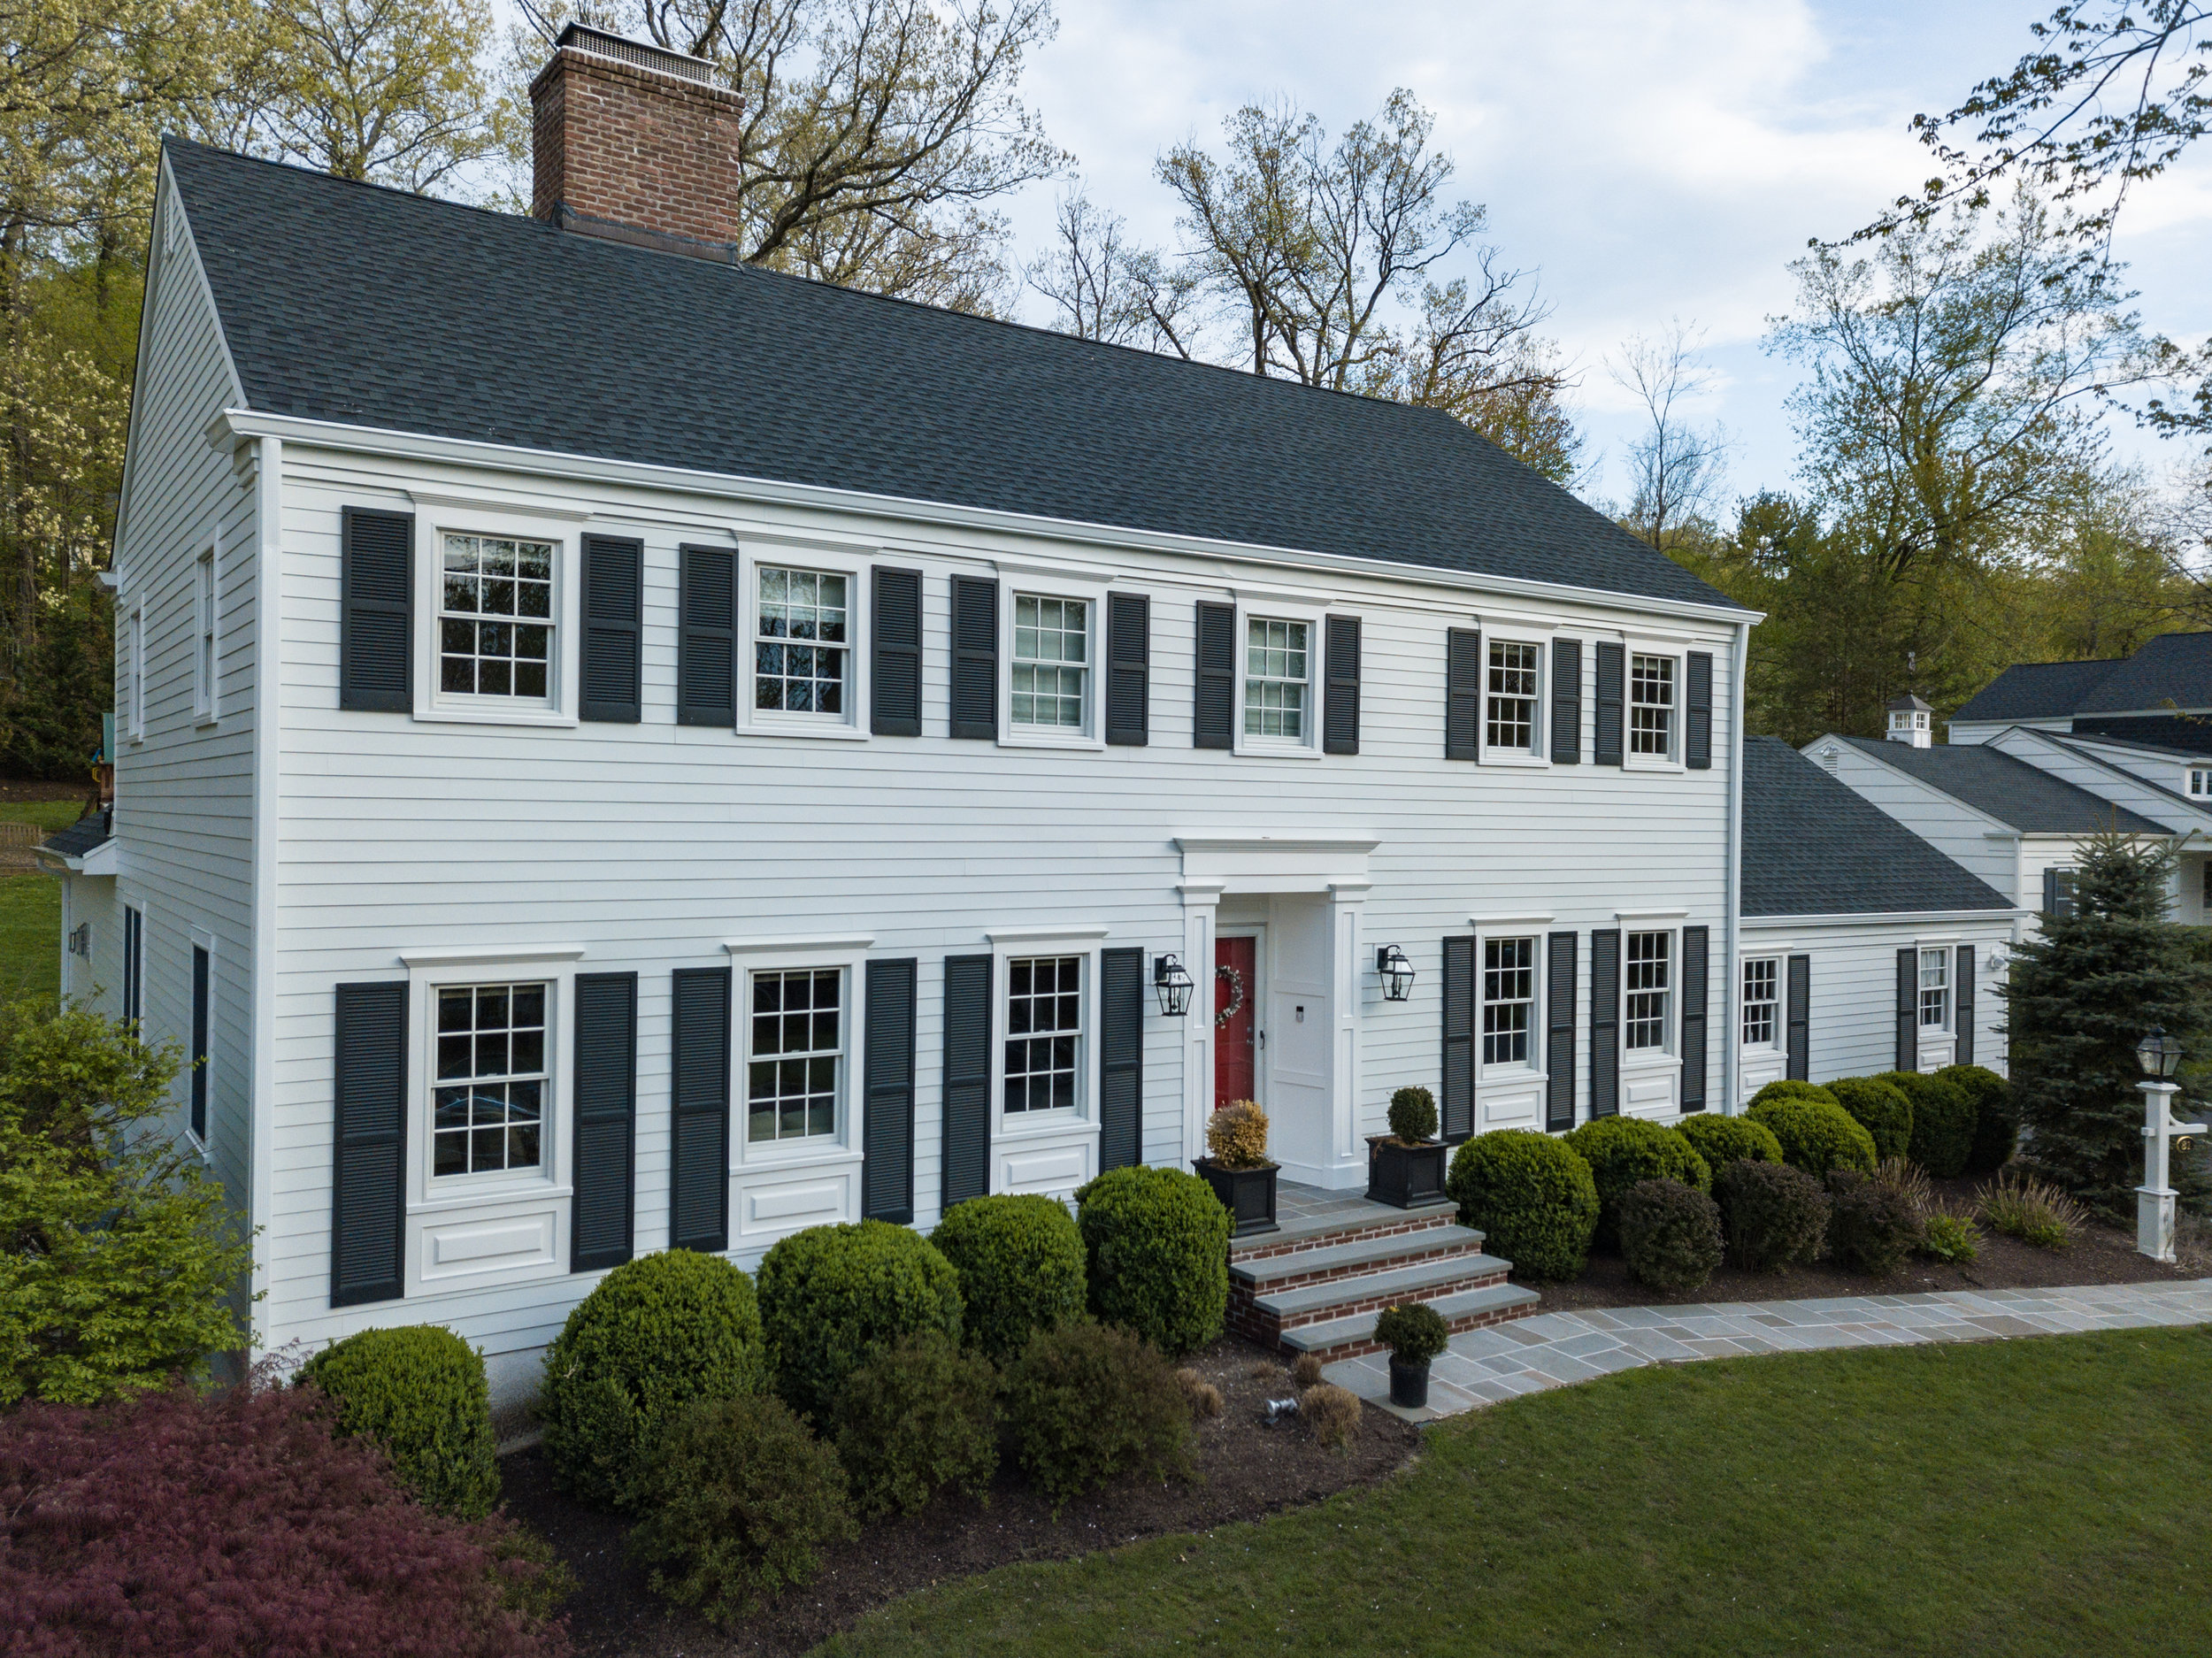 Chatham's Trusted Exterior Remodeling Partner! - NJ's Custom Home Exterior Remodelers